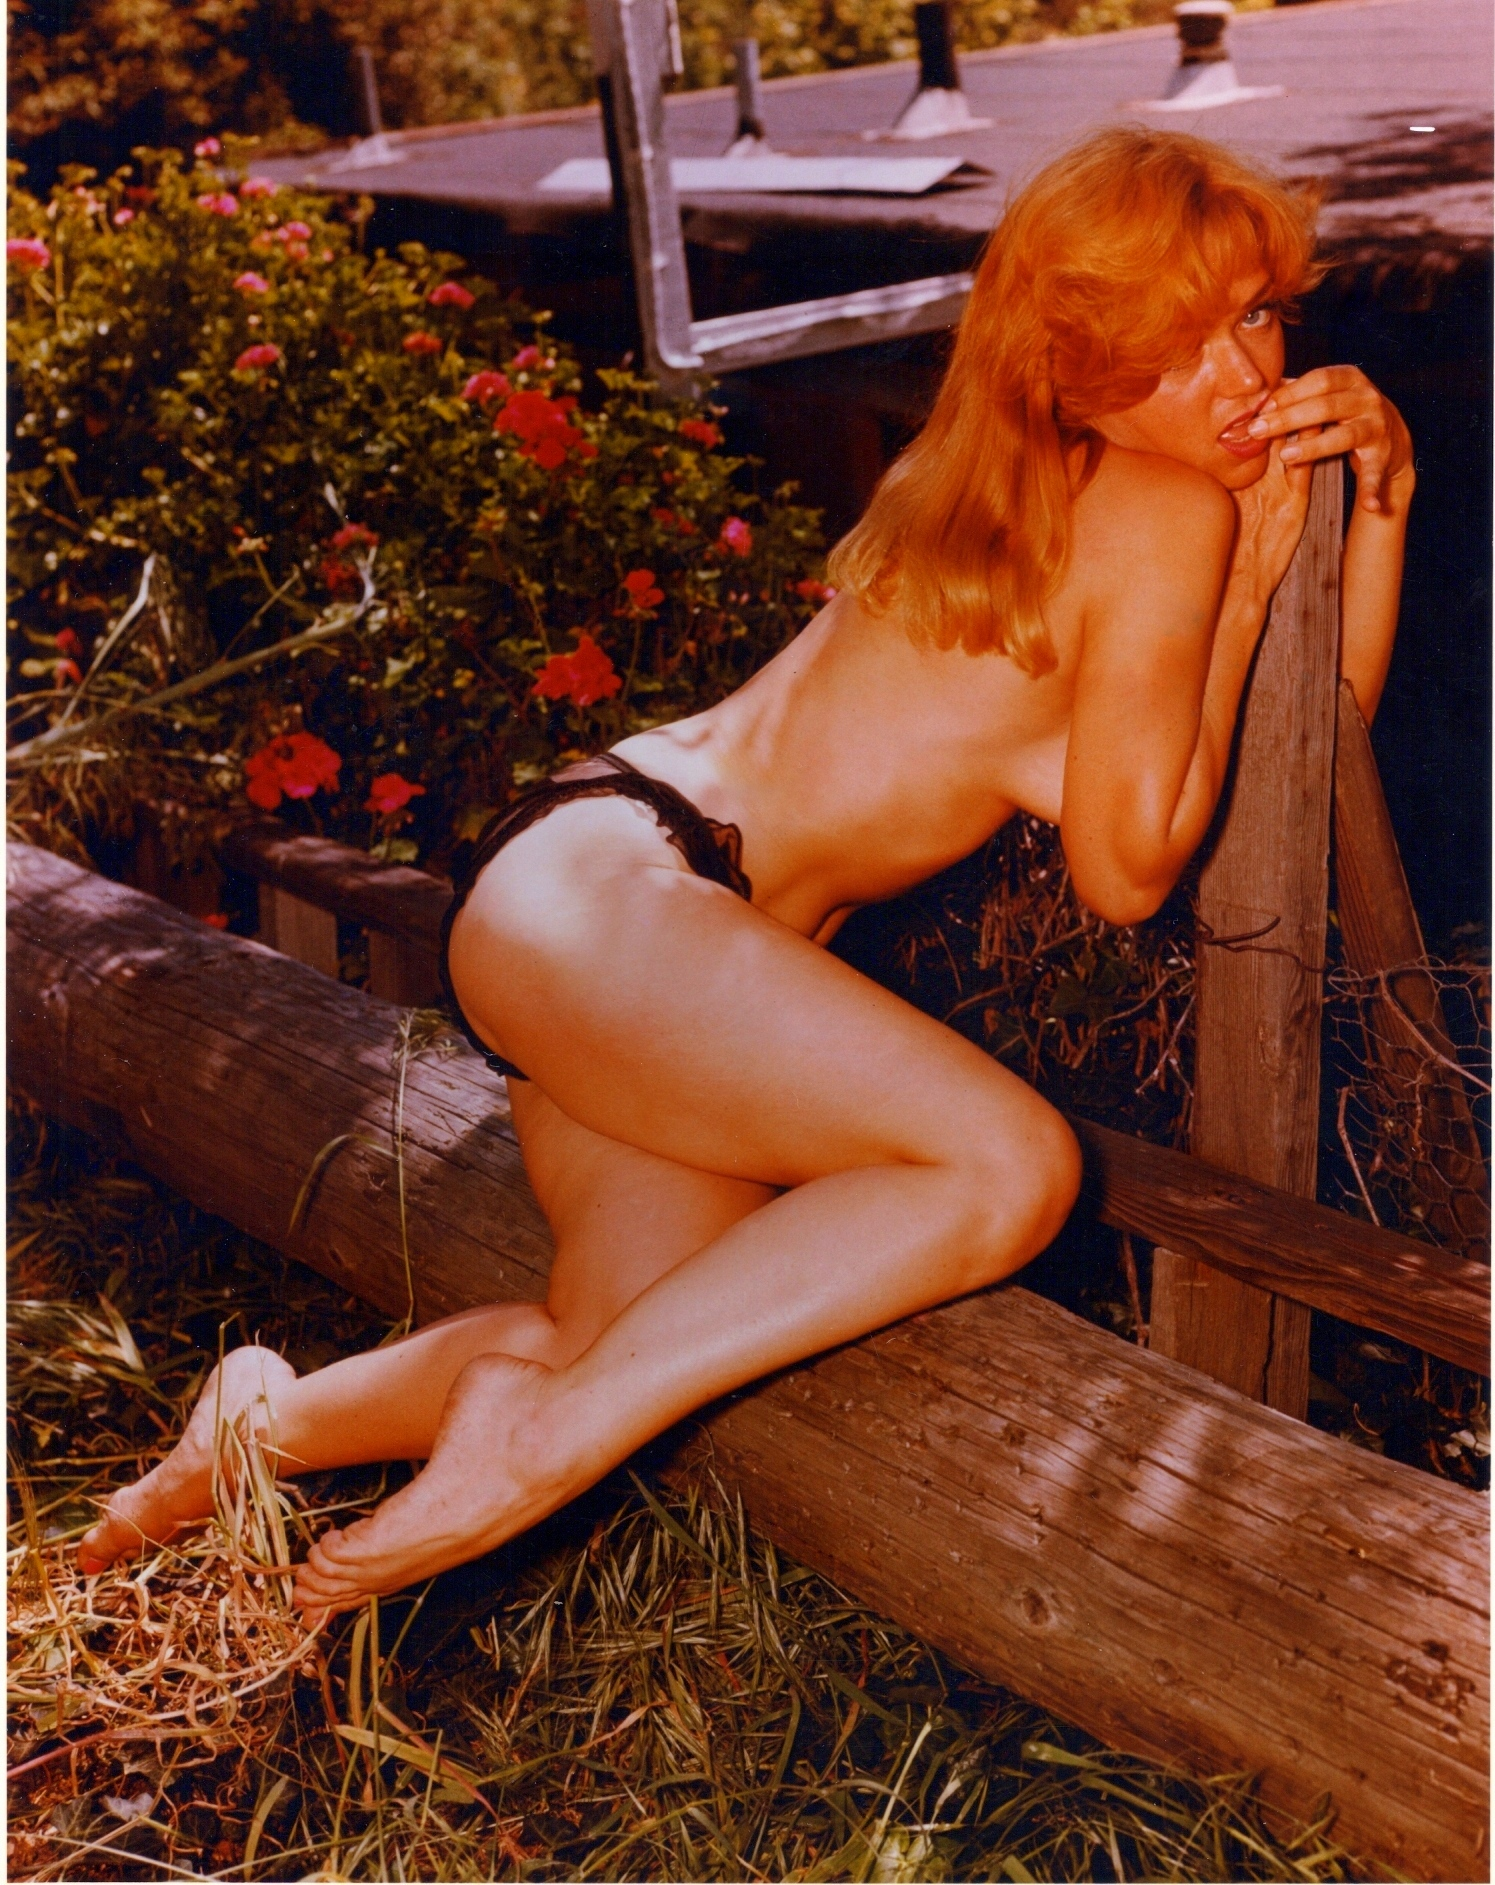 Yvette vickers nude pity, that